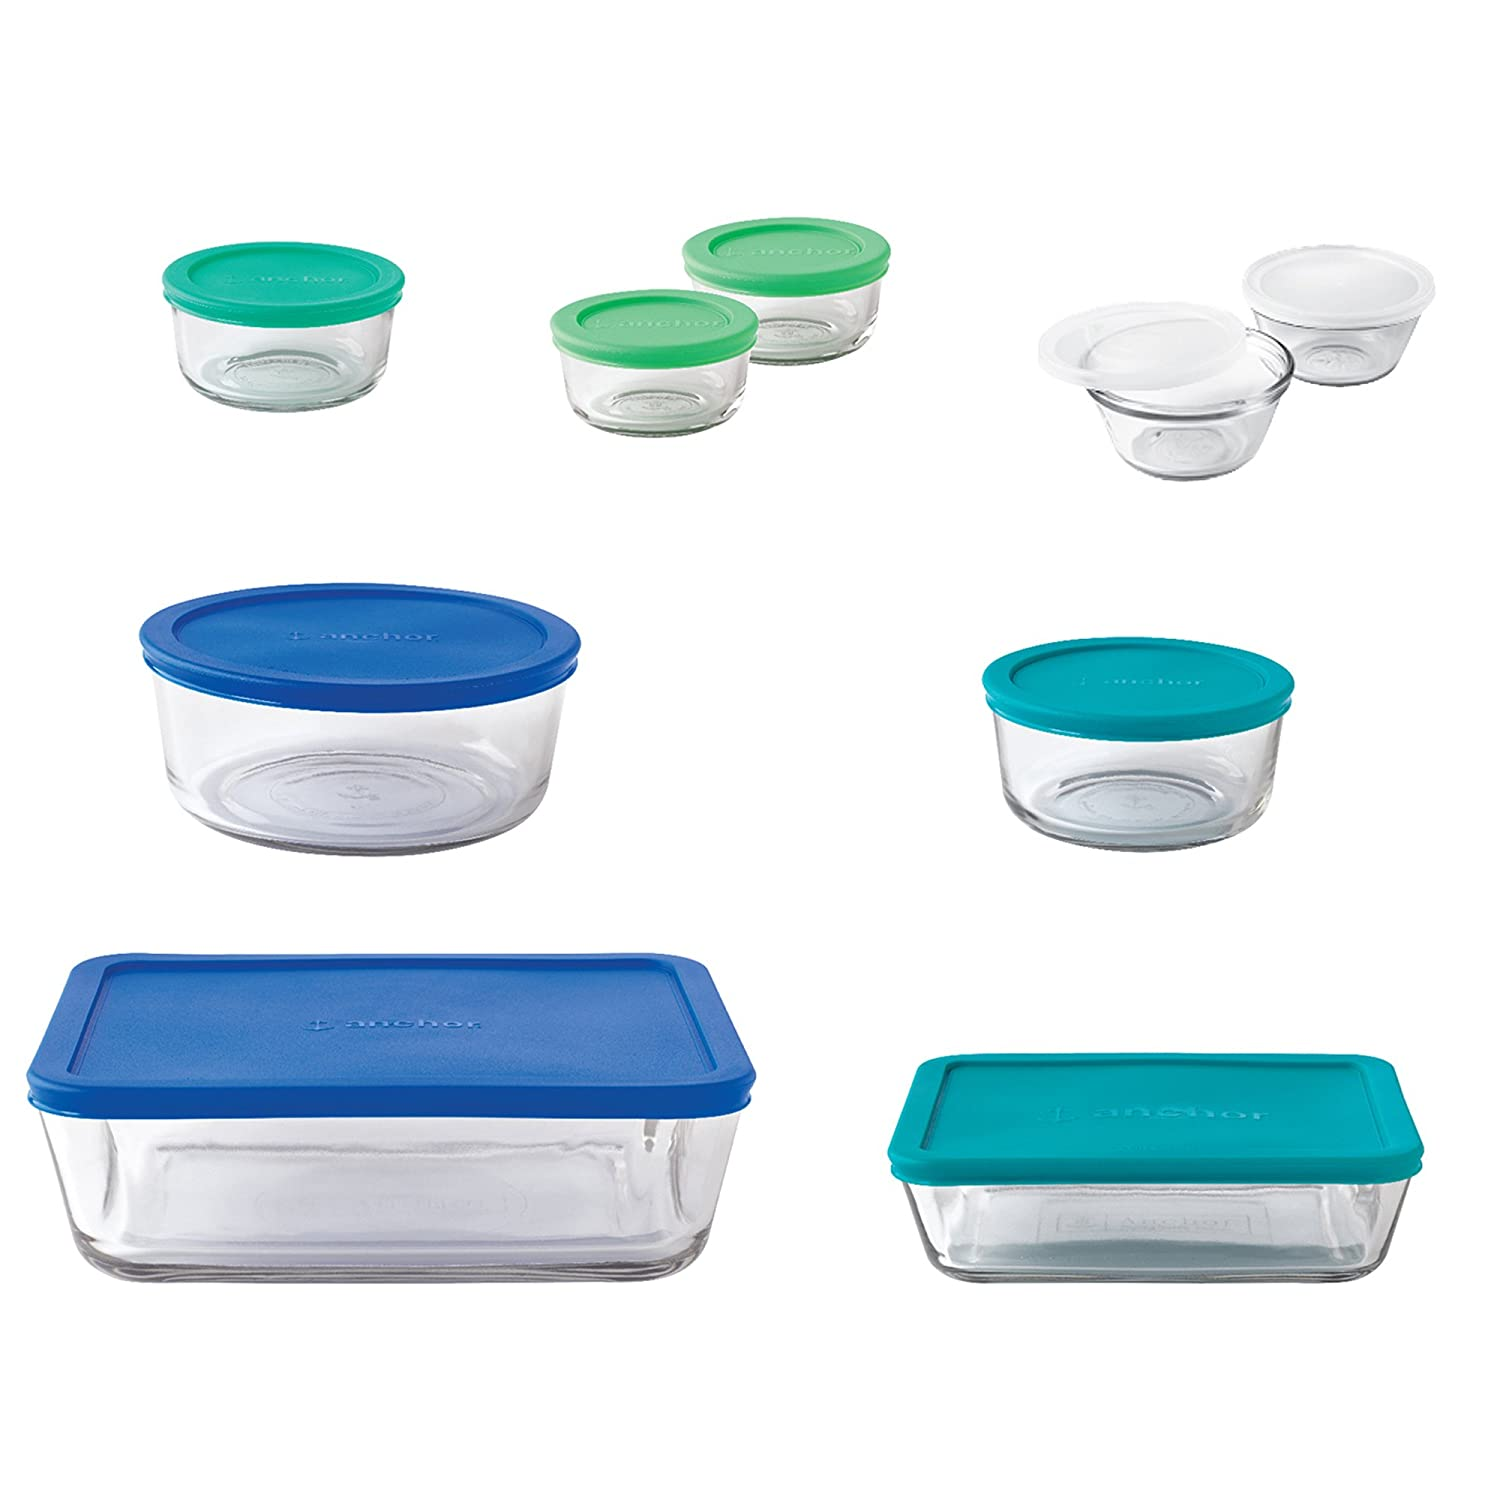 Anchor Hocking Classic Glass Food Storage Containers with Lids, Mixed Blue, 20-Piece Set